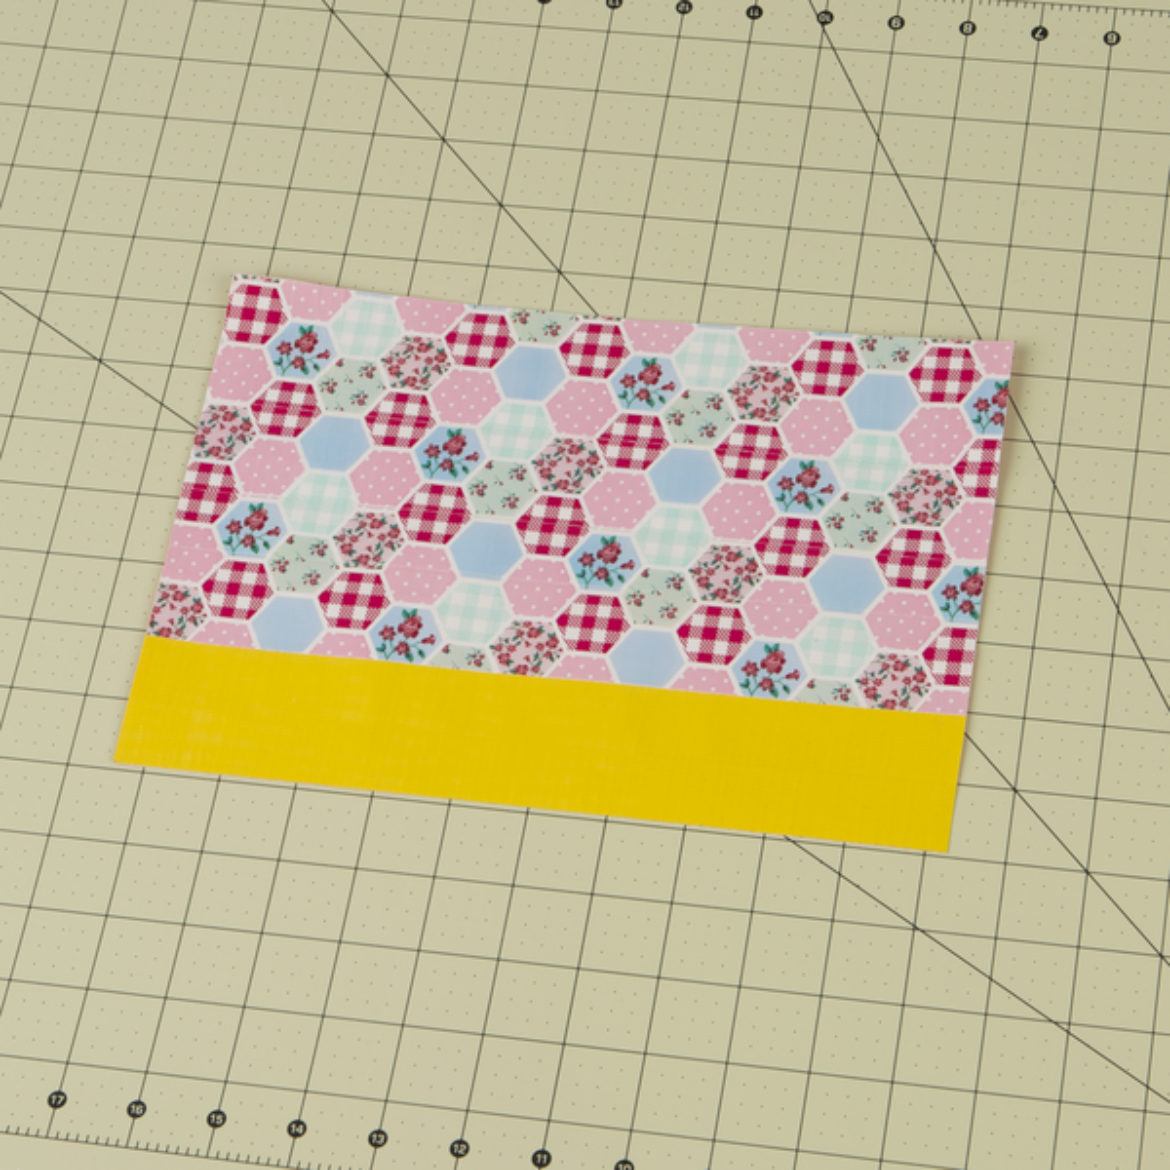 Duck Tape fabric with a strip of yellow Duck Tape at the bottom